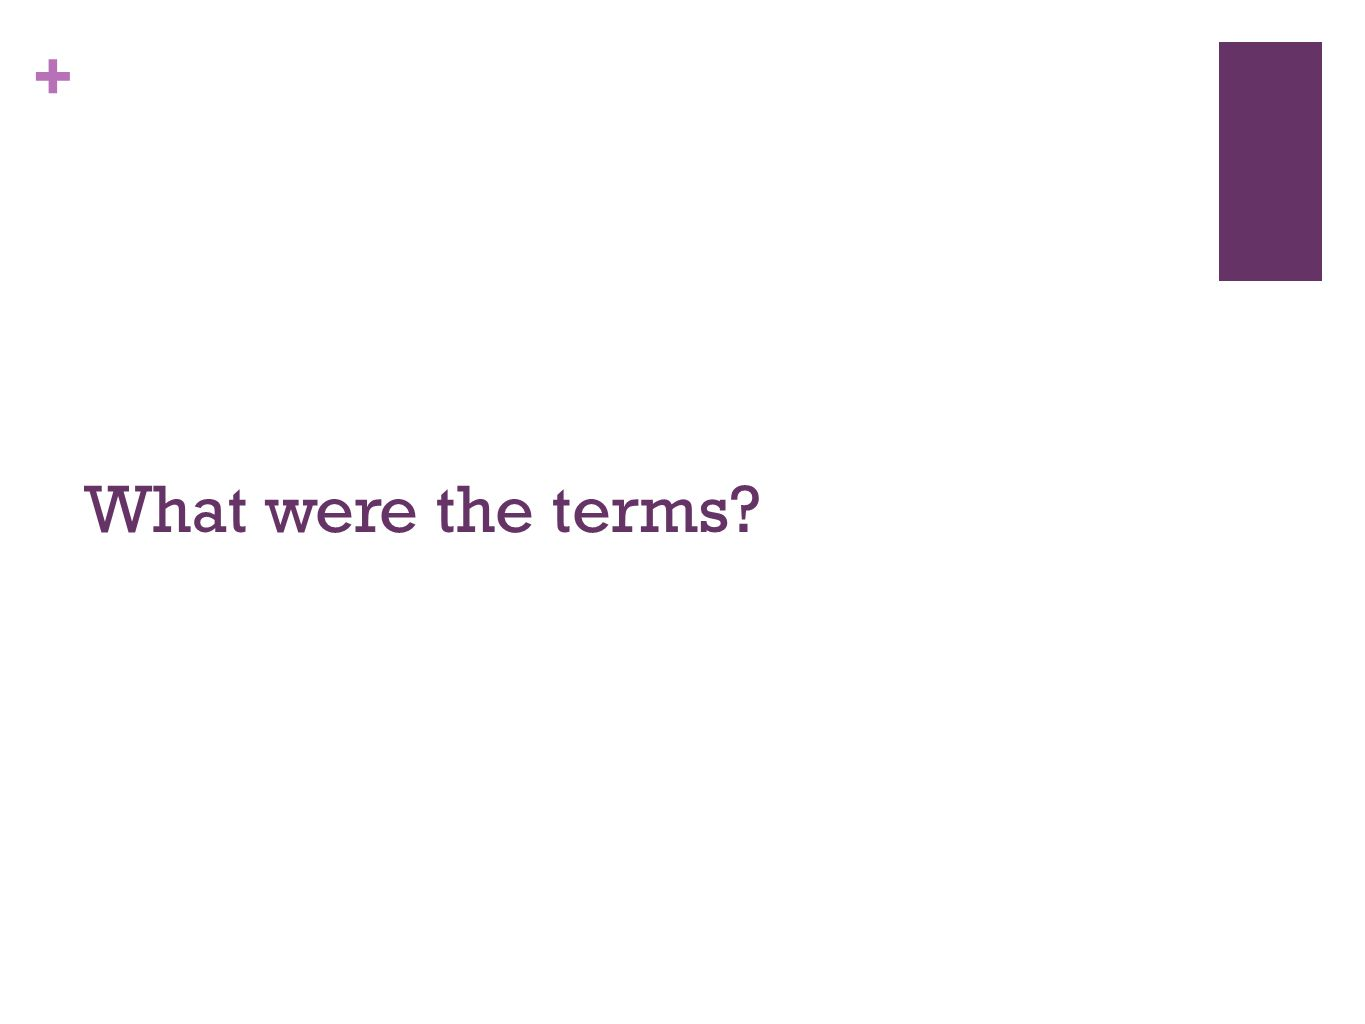 + What were the terms?